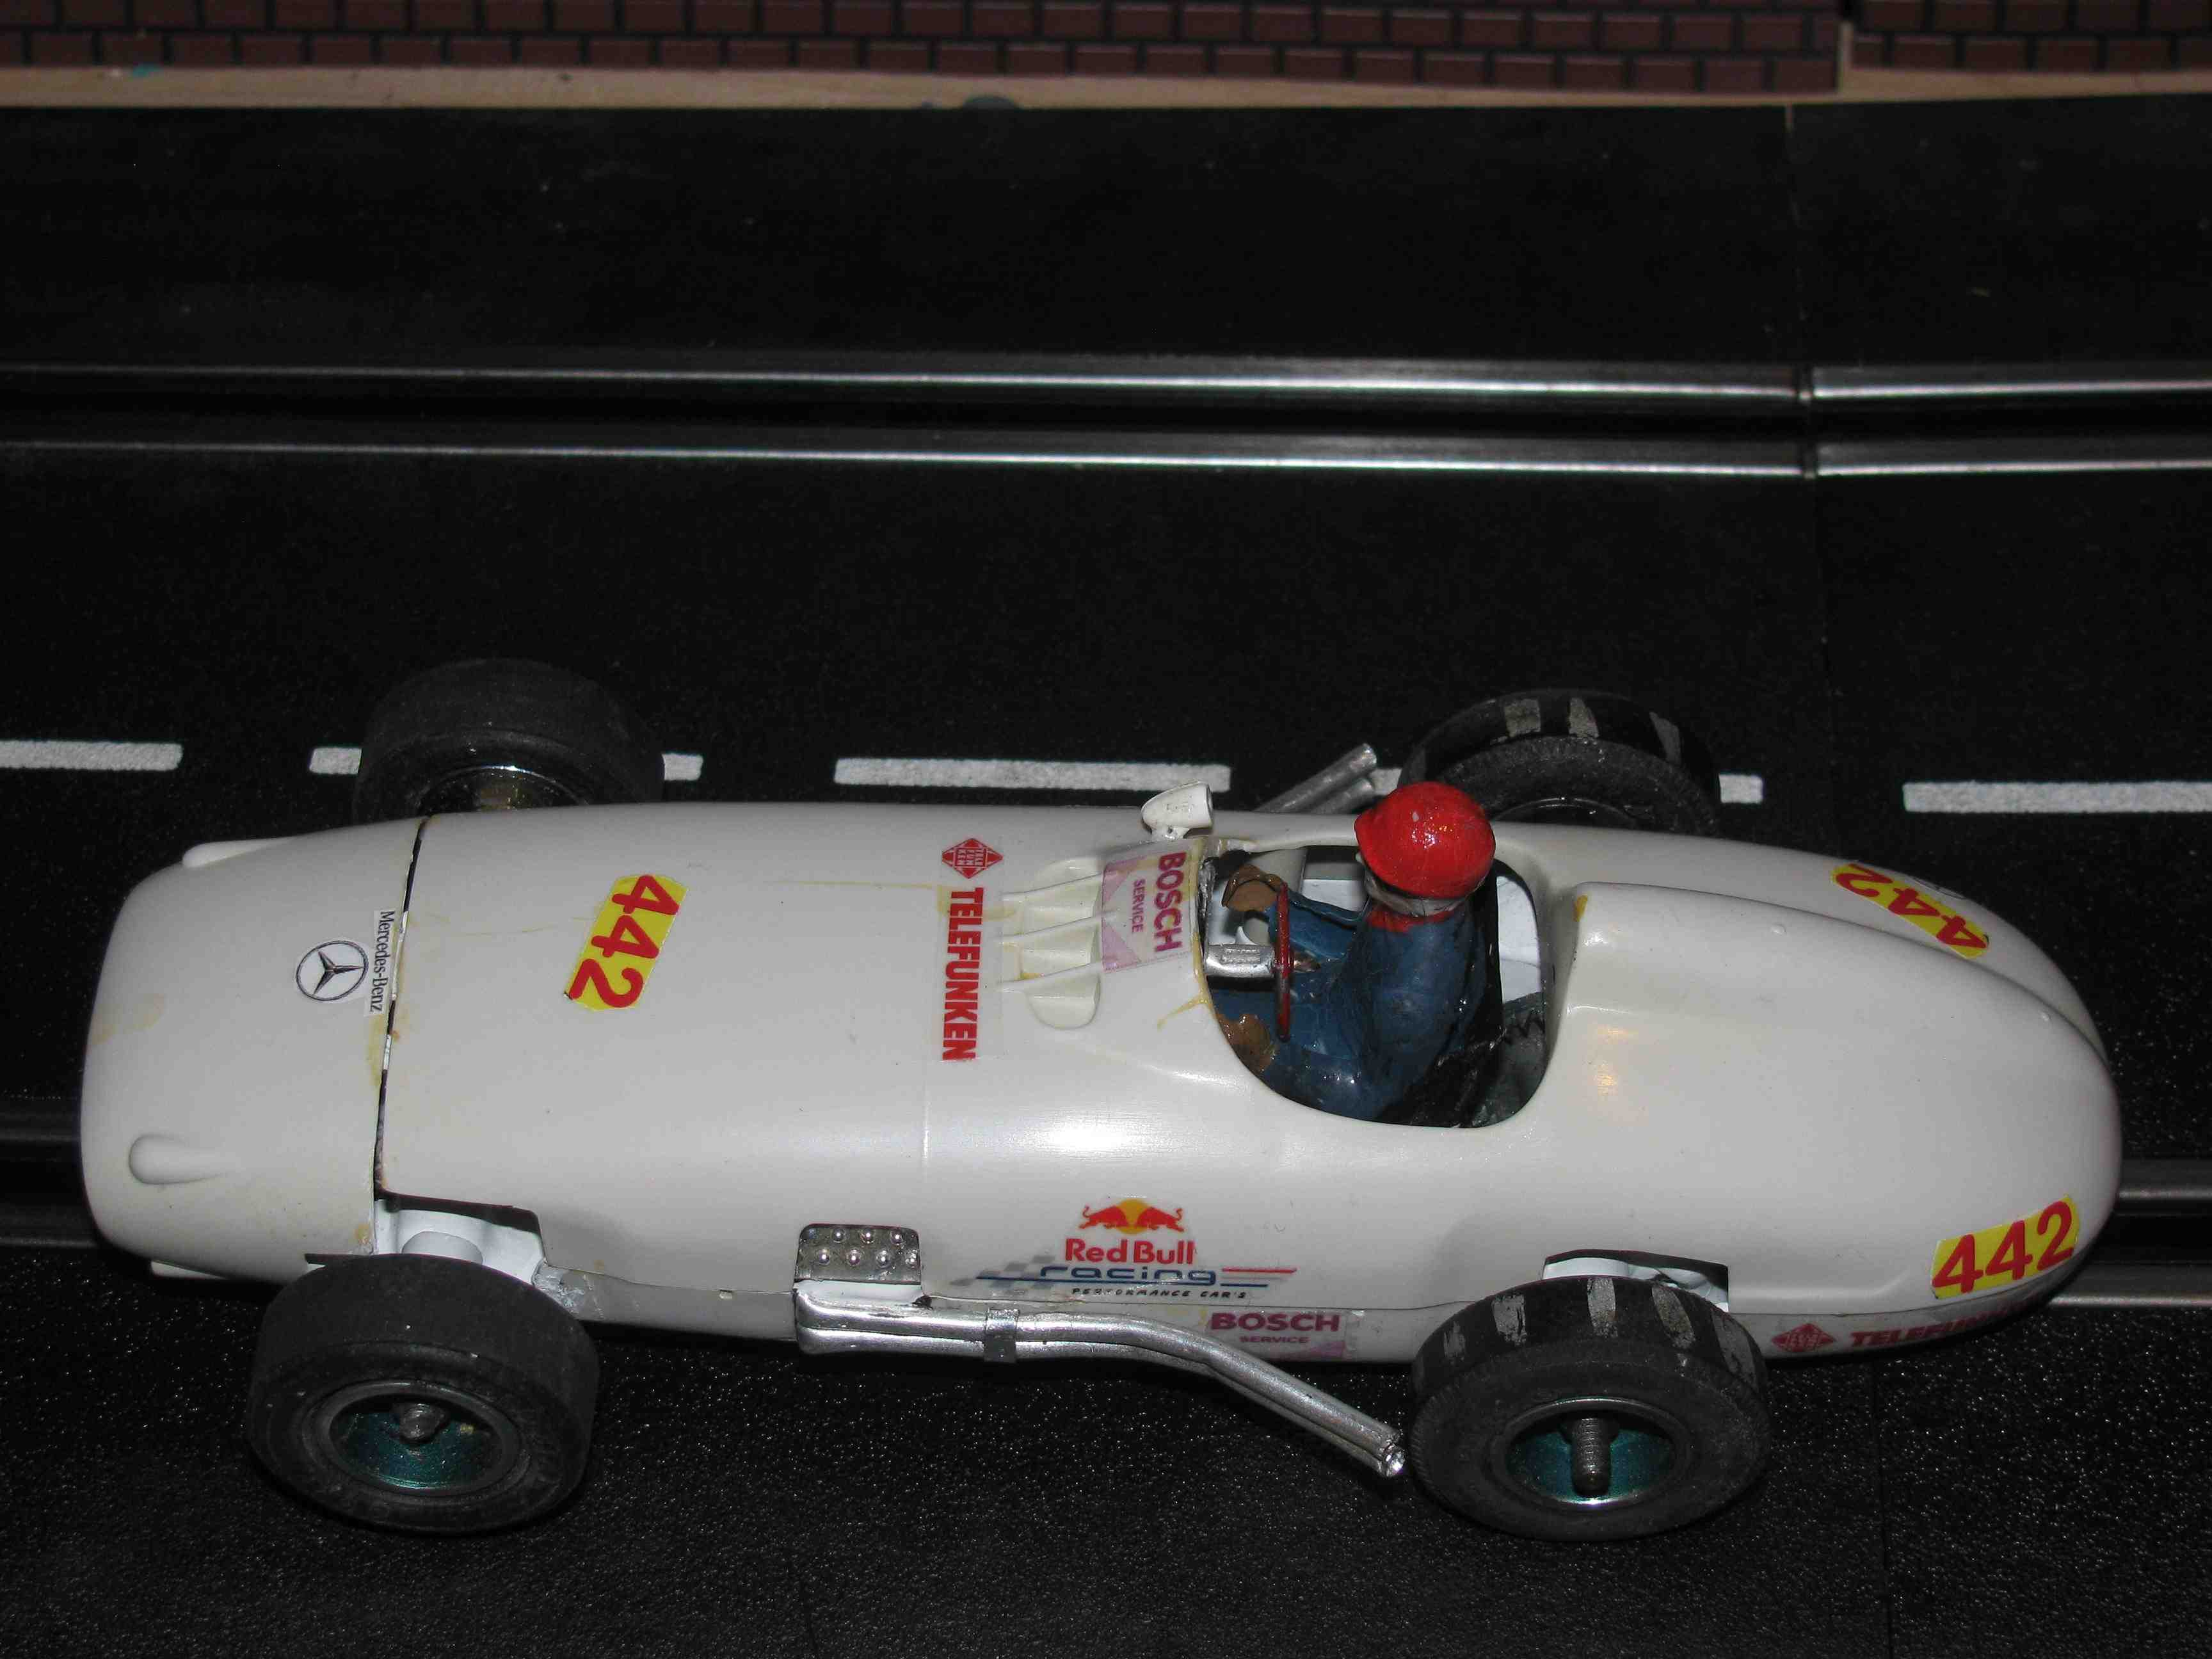 * SOLD * 1959 Strombecker Mercedes Benz Formula One Racer - Car # 442